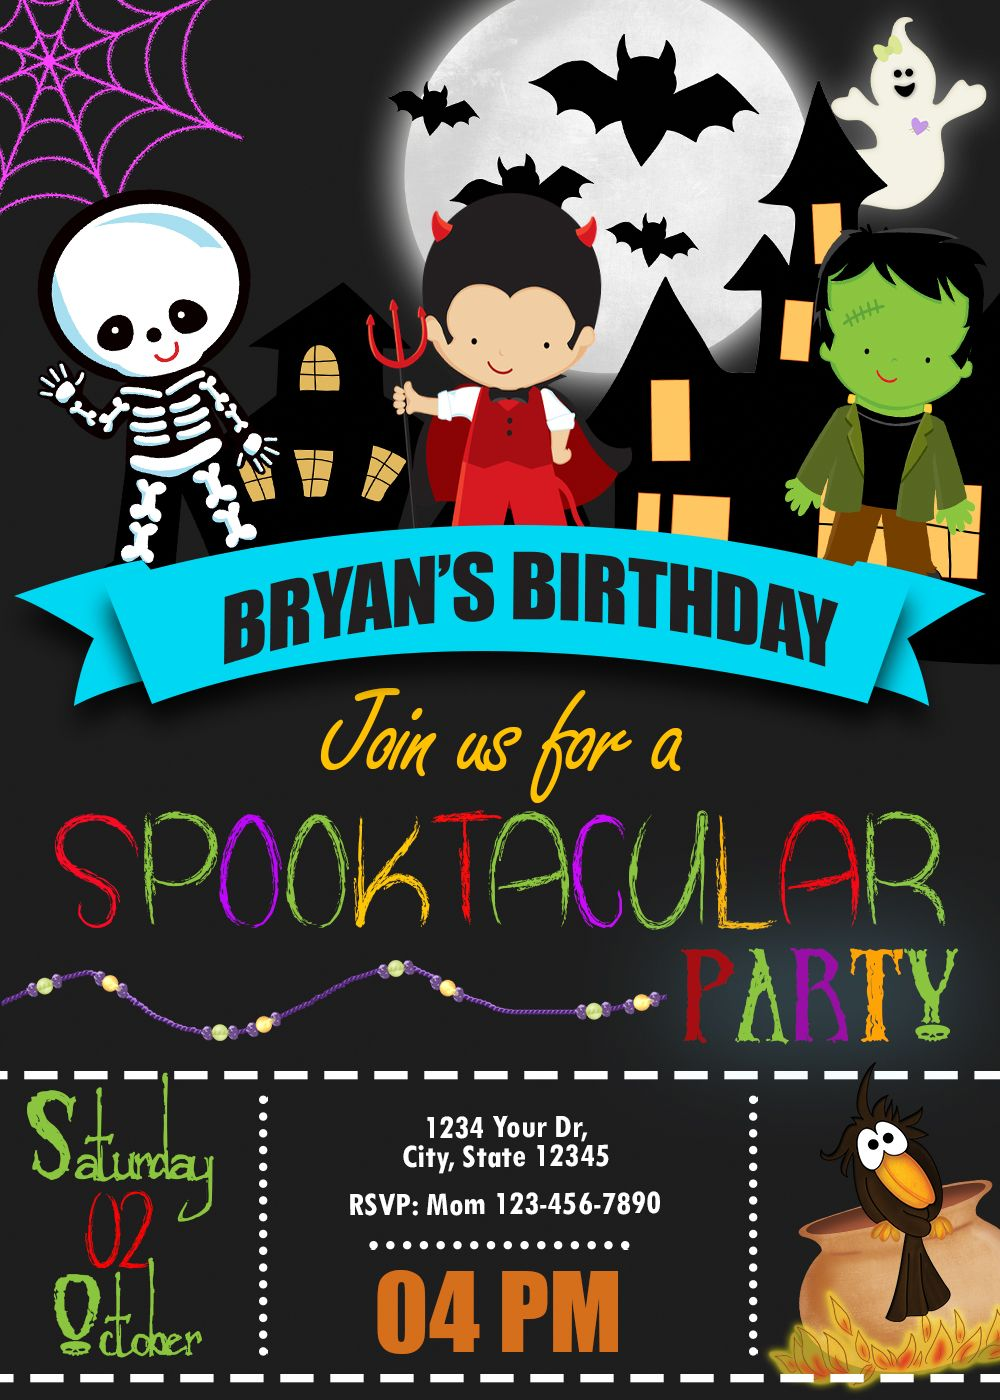 Birthday Invitations And Party Supplies Amazing Designs Us Halloween Birthday Party Invitations Halloween Costume Party Invitations Costume Party Invitations